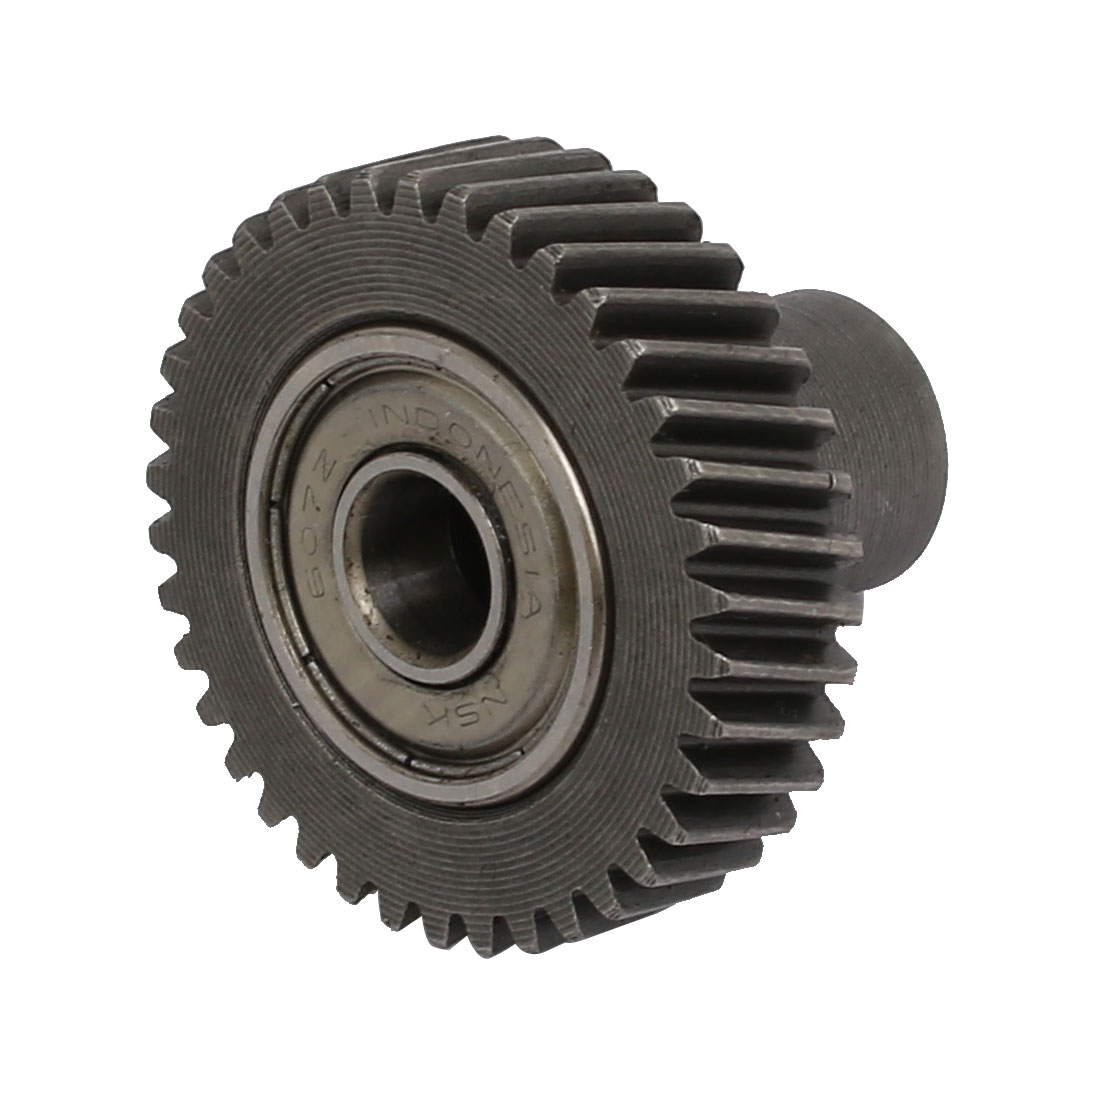 GBH2-28DRE Replacement Part Cluster Helical Gear Wheel for Bosch Electric Hammer